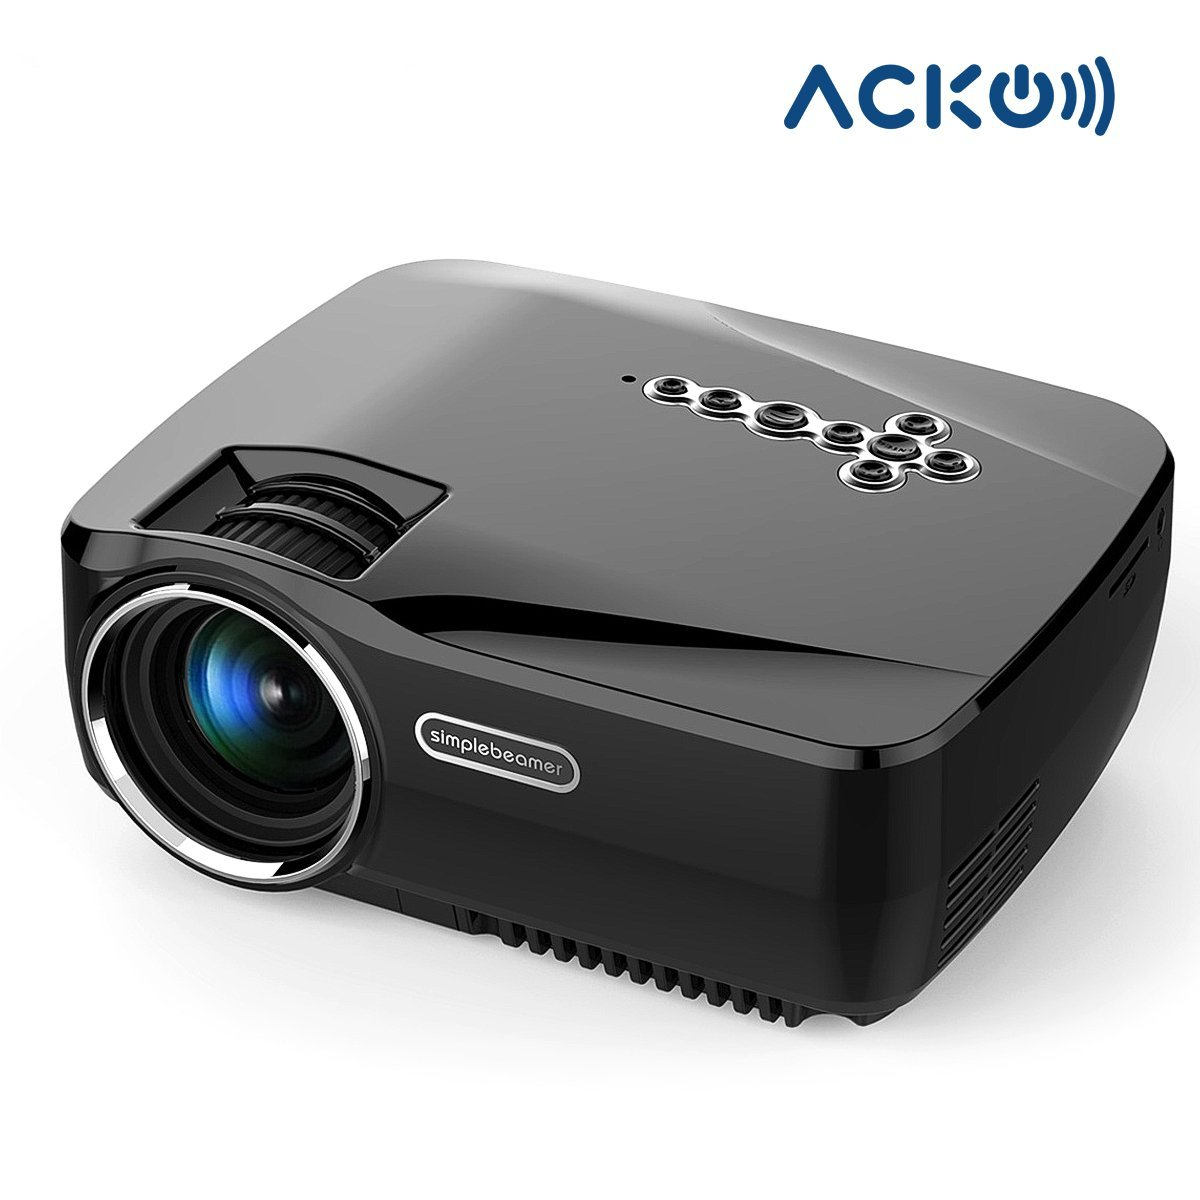 Acko Wifi LED HD Portable Mini Video Projector Bluetooth 1200 Lumens Home Theater 1080p USB HDMI VGA SD Player Computer Laptop Black